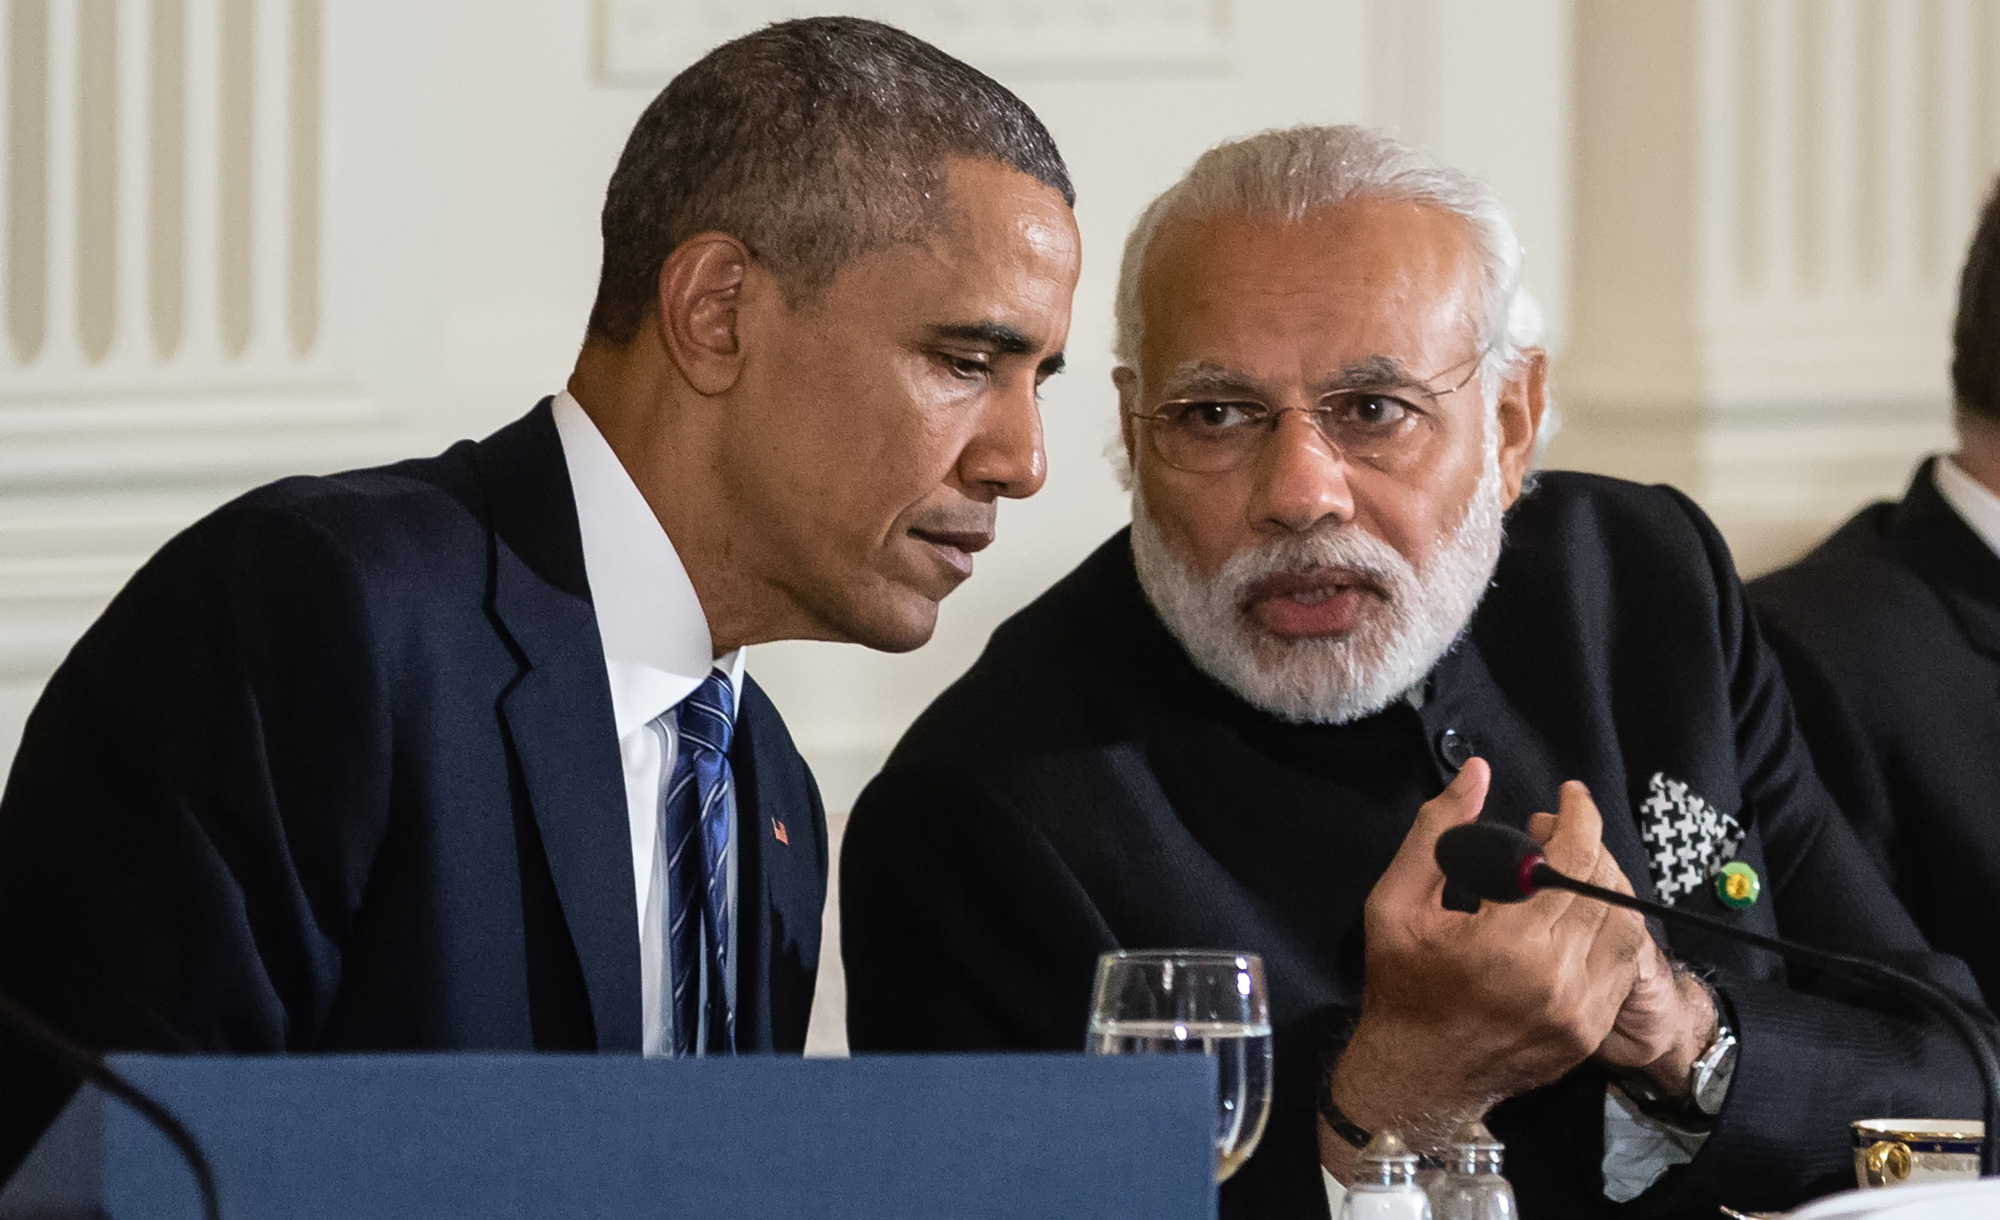 United States President Barack Obama talks with Prime Minister of India Narendra Modi. Obama and Clinton labelled South Asia a dangerous place